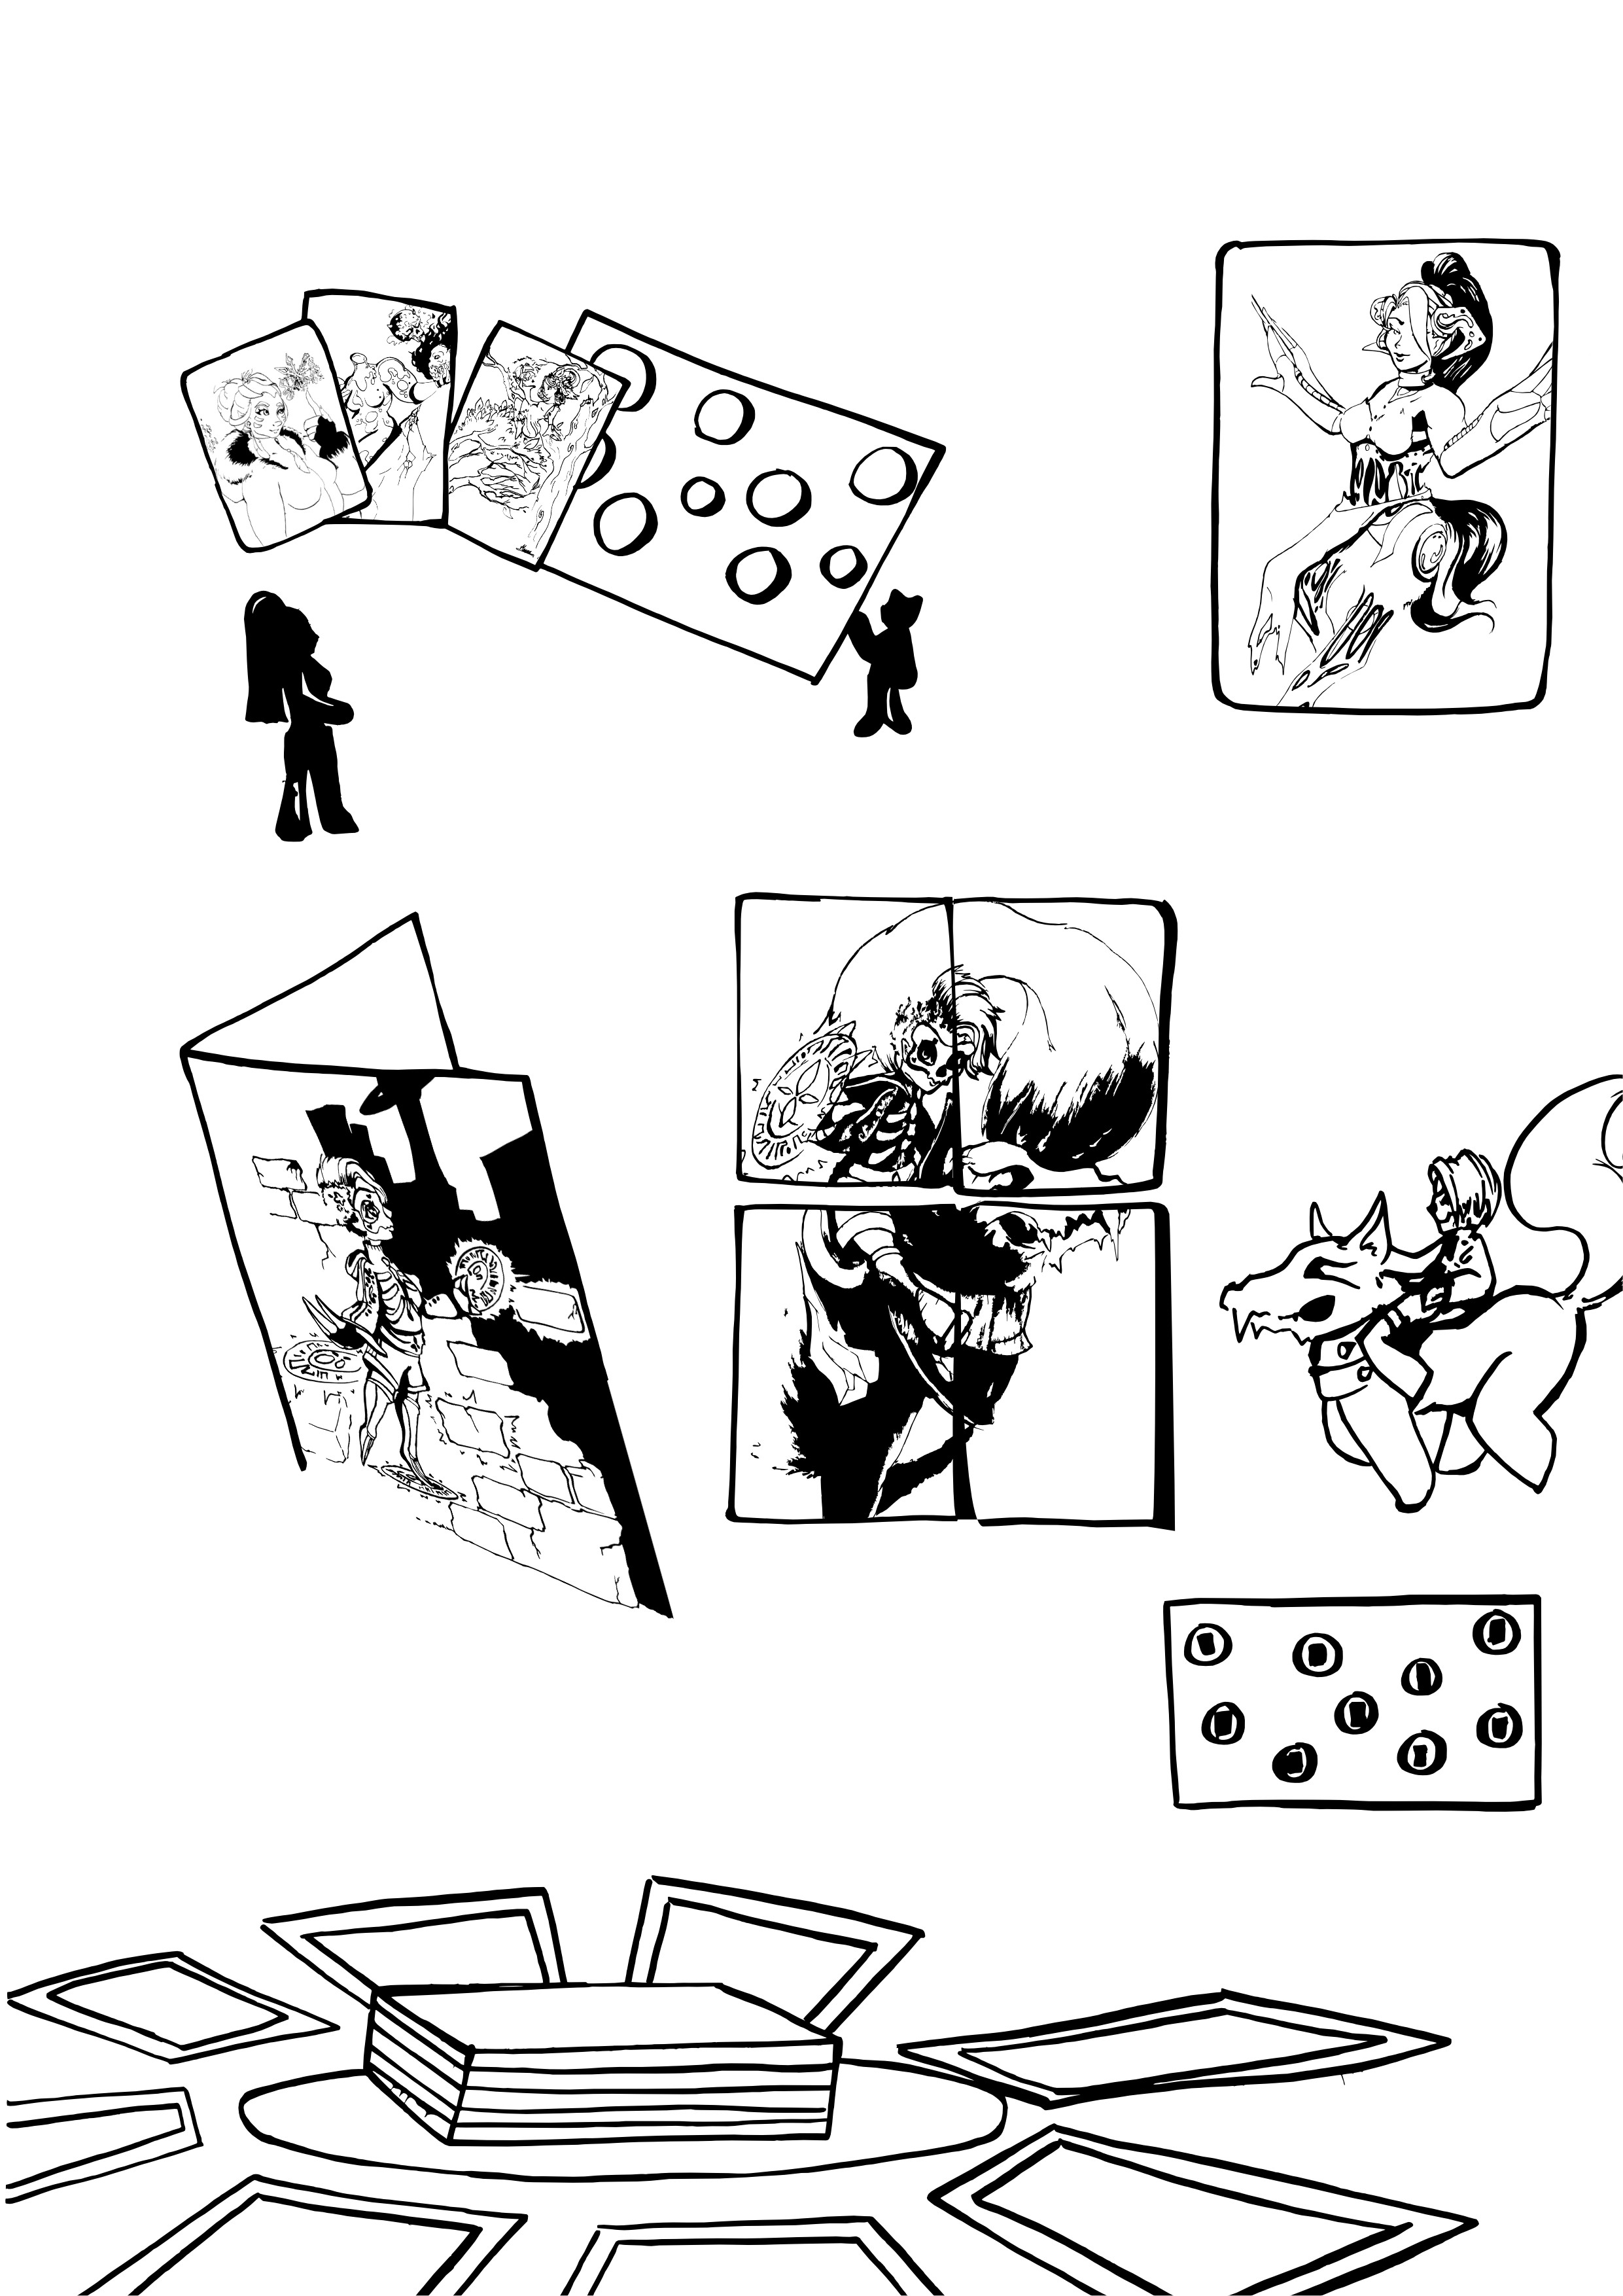 To the day I created  a comic for a manual for an interplanetary TCG I had made as my first assignment.